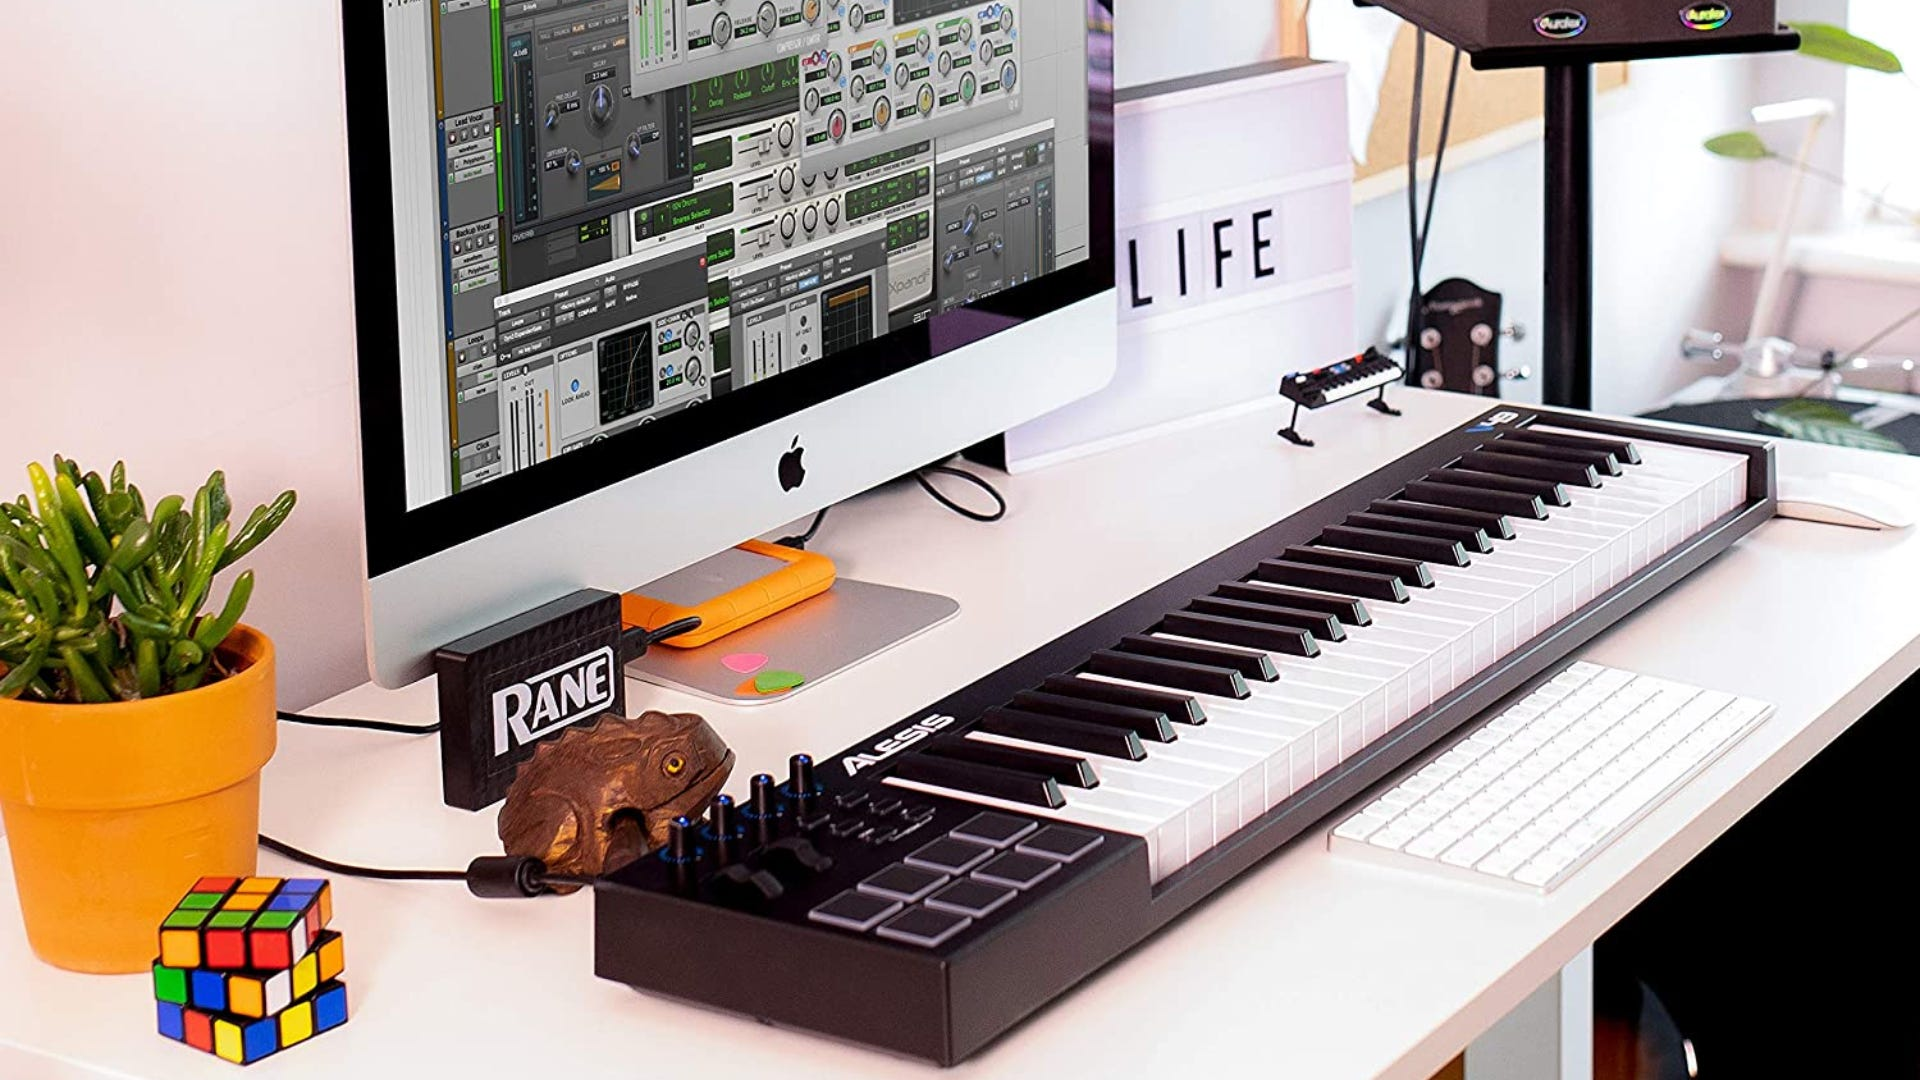 A MIDI keyboard sitting on a decorated desk with a computer.